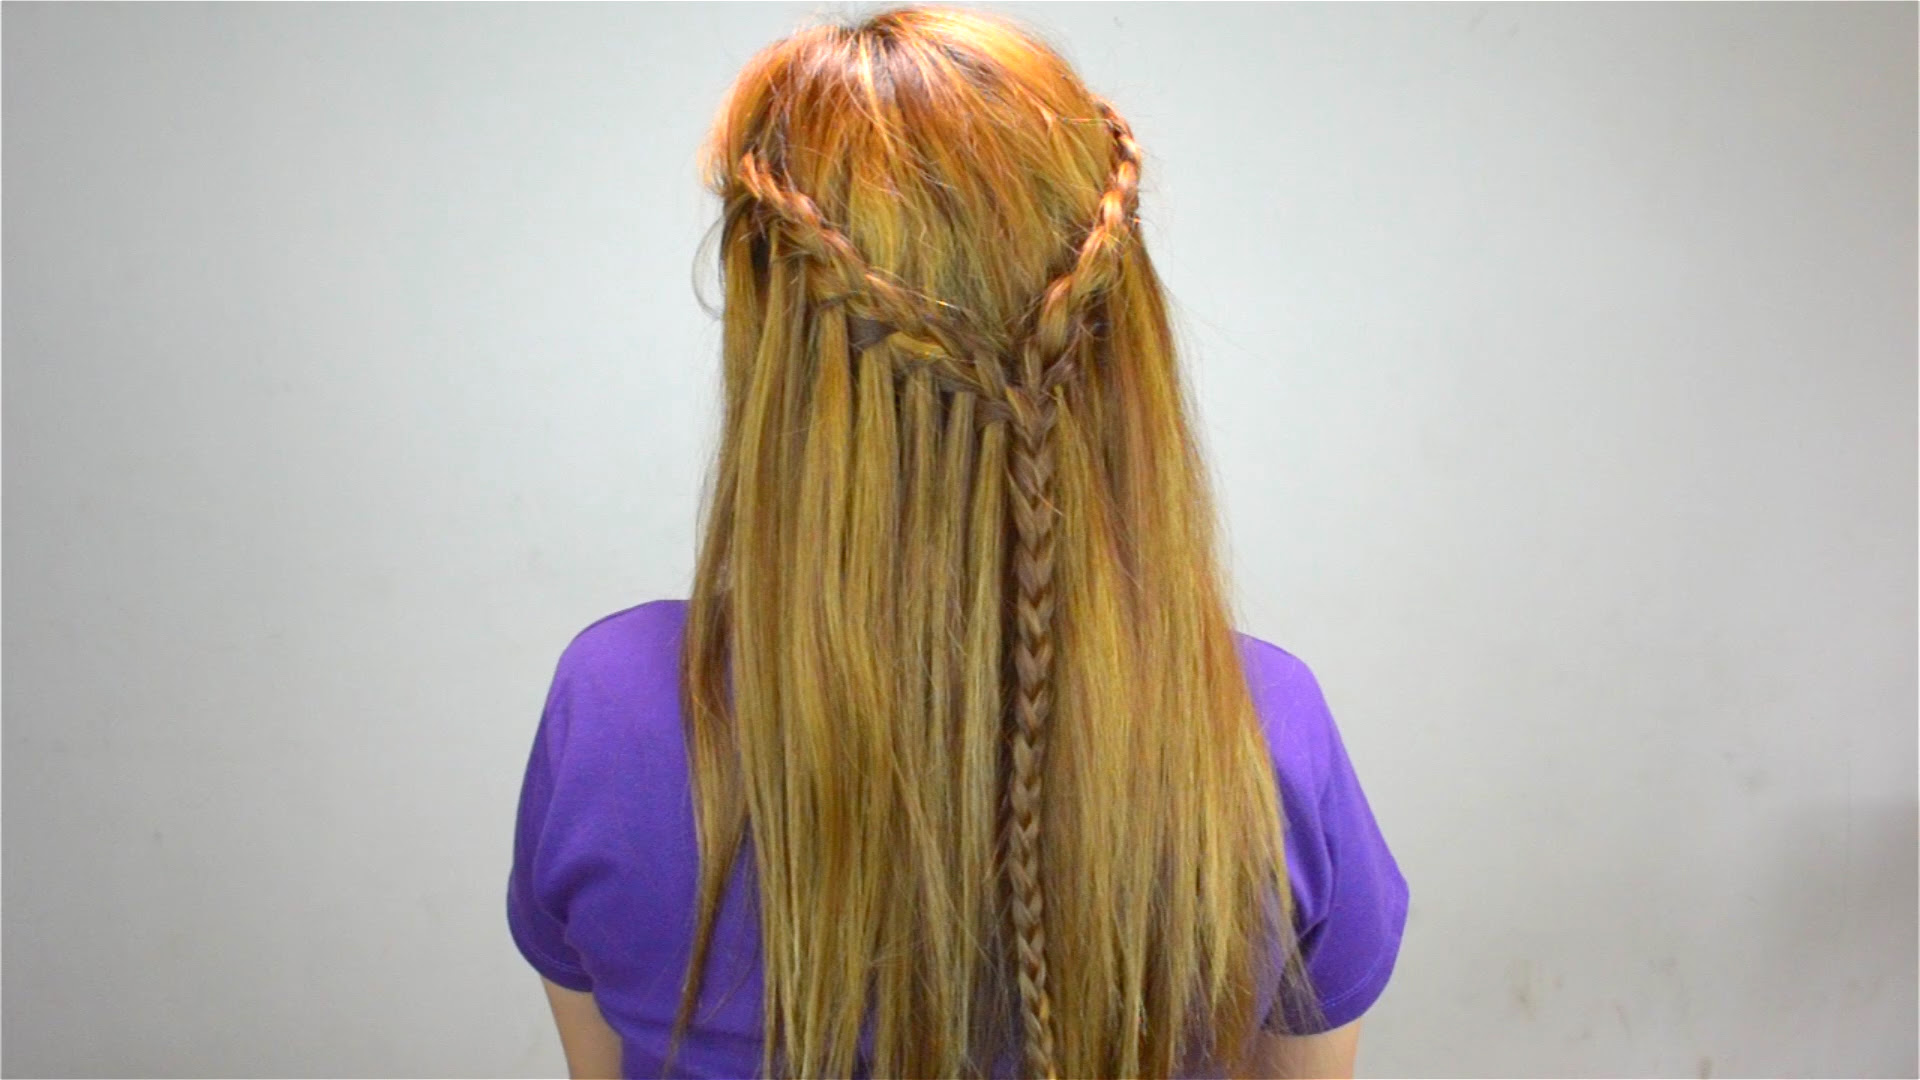 4 Easy Ways to Style Very Long Hair - wikiHow